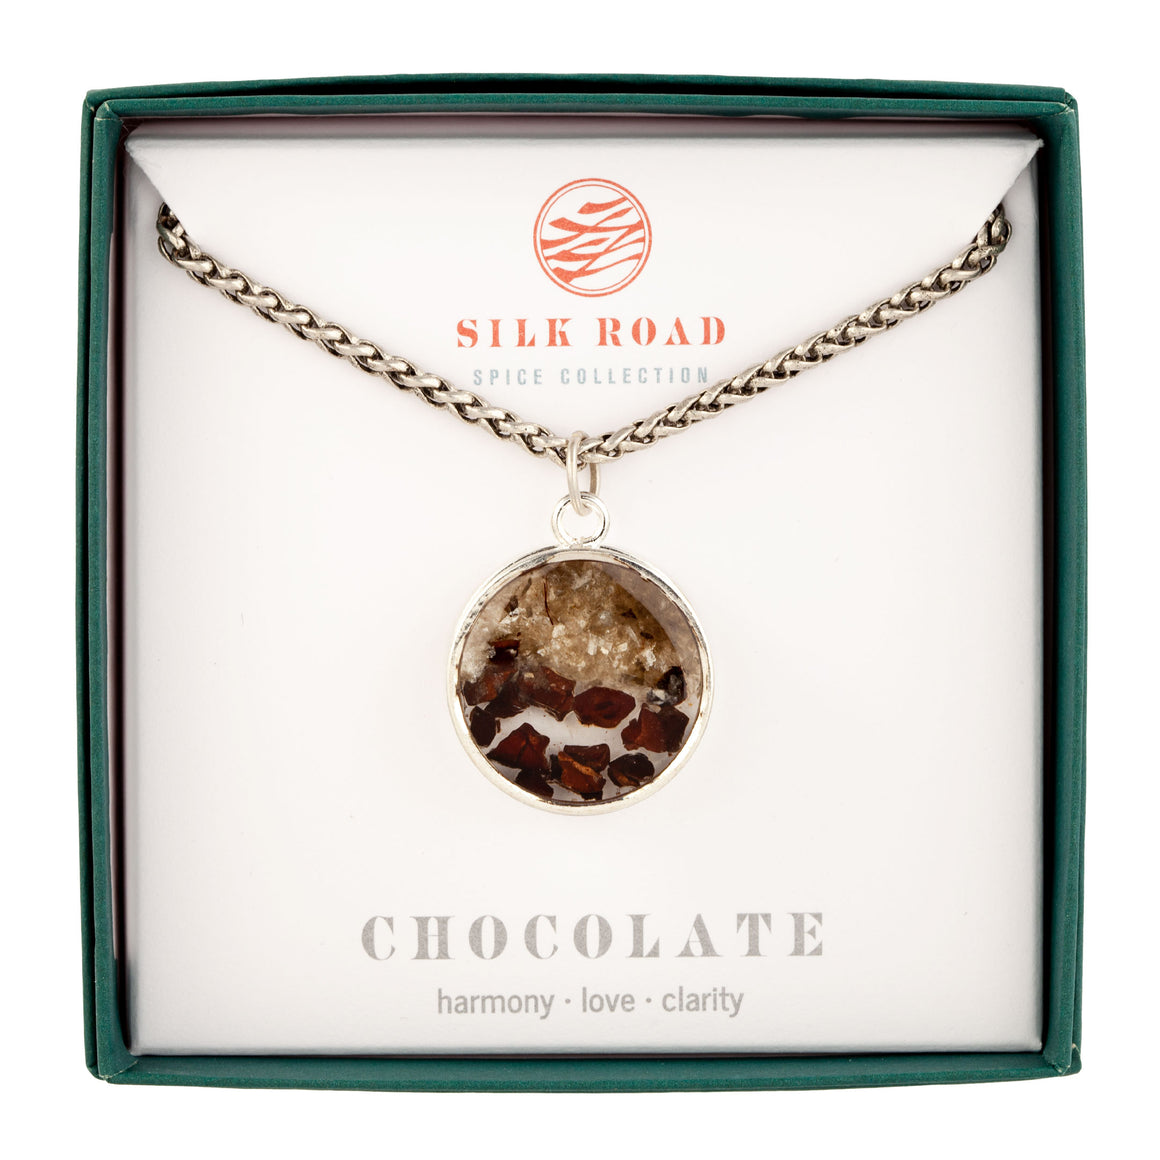 Chocolate | Monocle Necklace